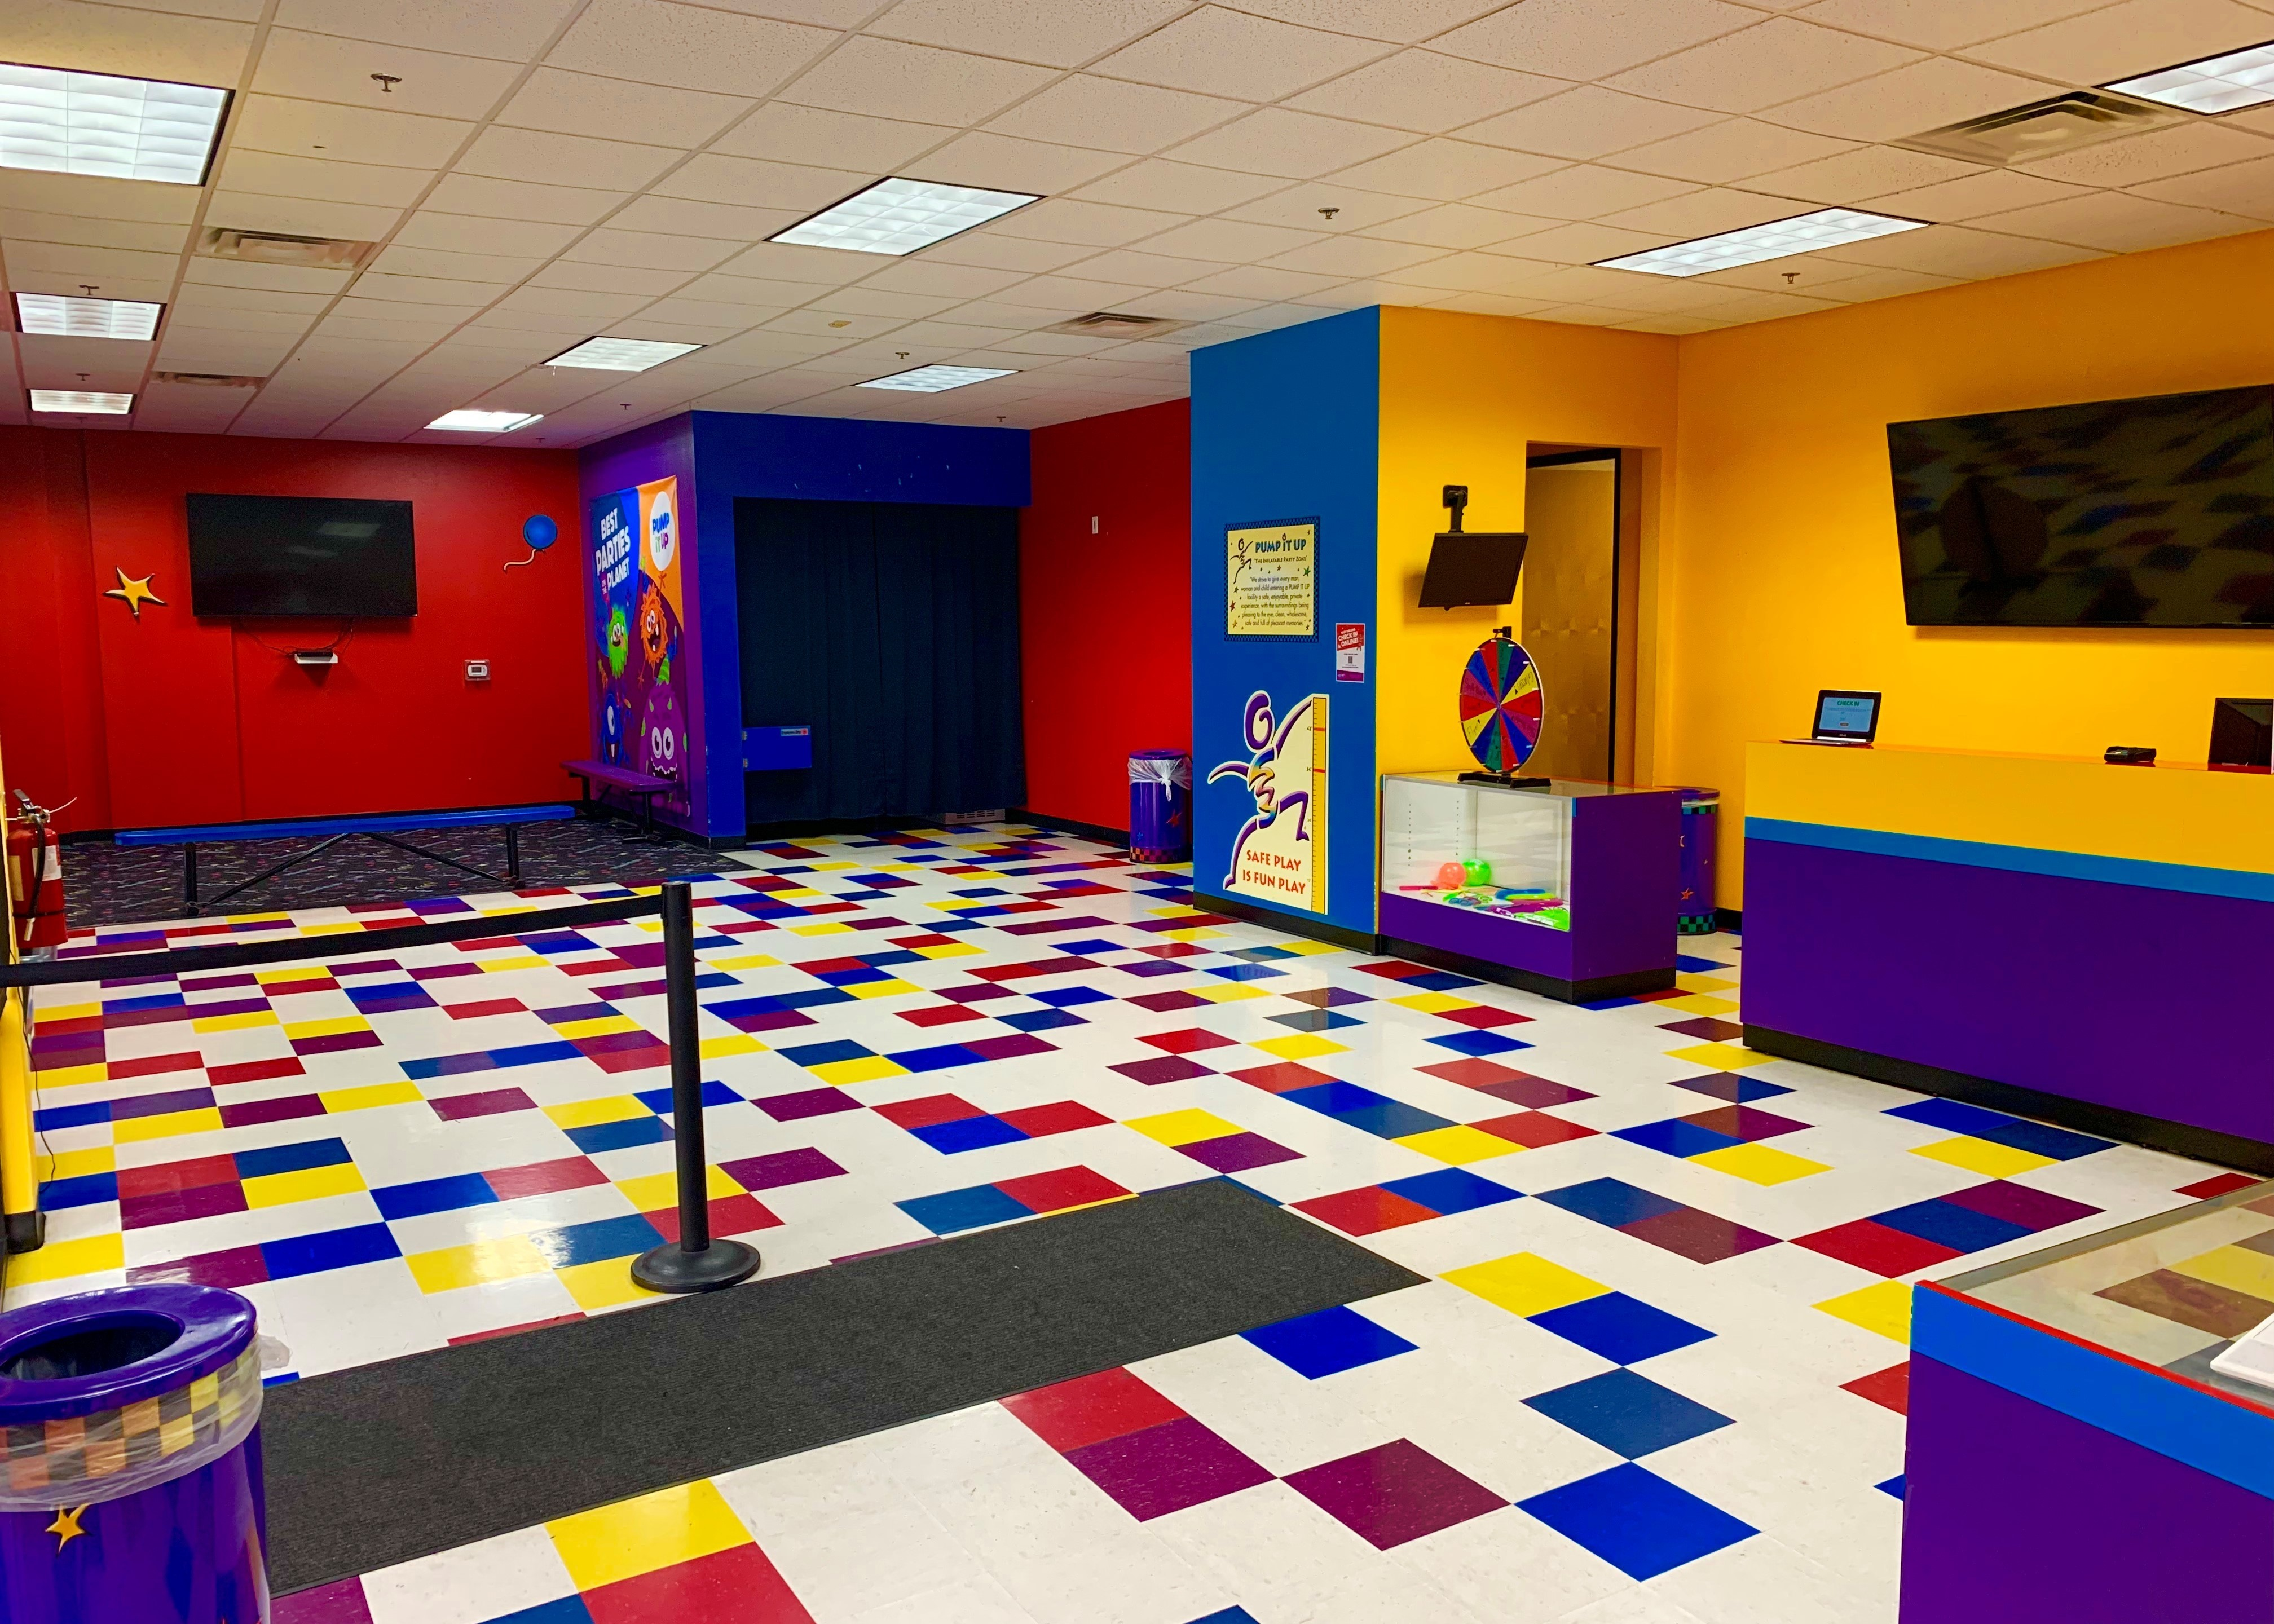 Pump It Up lobby of a kid's private birthday party place.